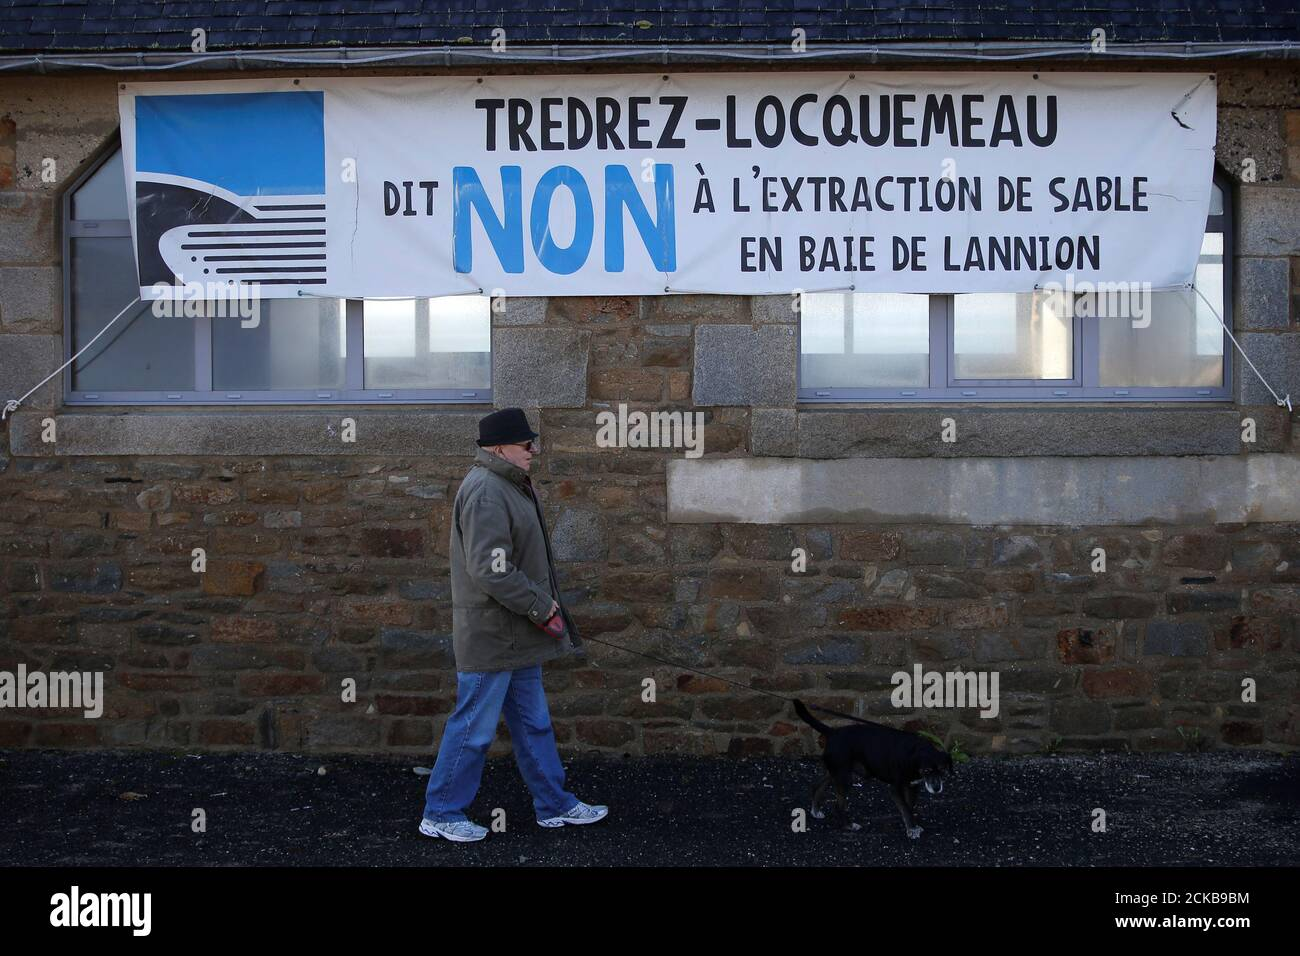 """A man walks in front of a banner which reads: """"Tredrez-Locquemeau say No to the extraction of sand in the bay of Lannion"""" in Tredrez-Locquemeau, December 17, 2016. REUTERS/Stephane Mahe Foto de stock"""